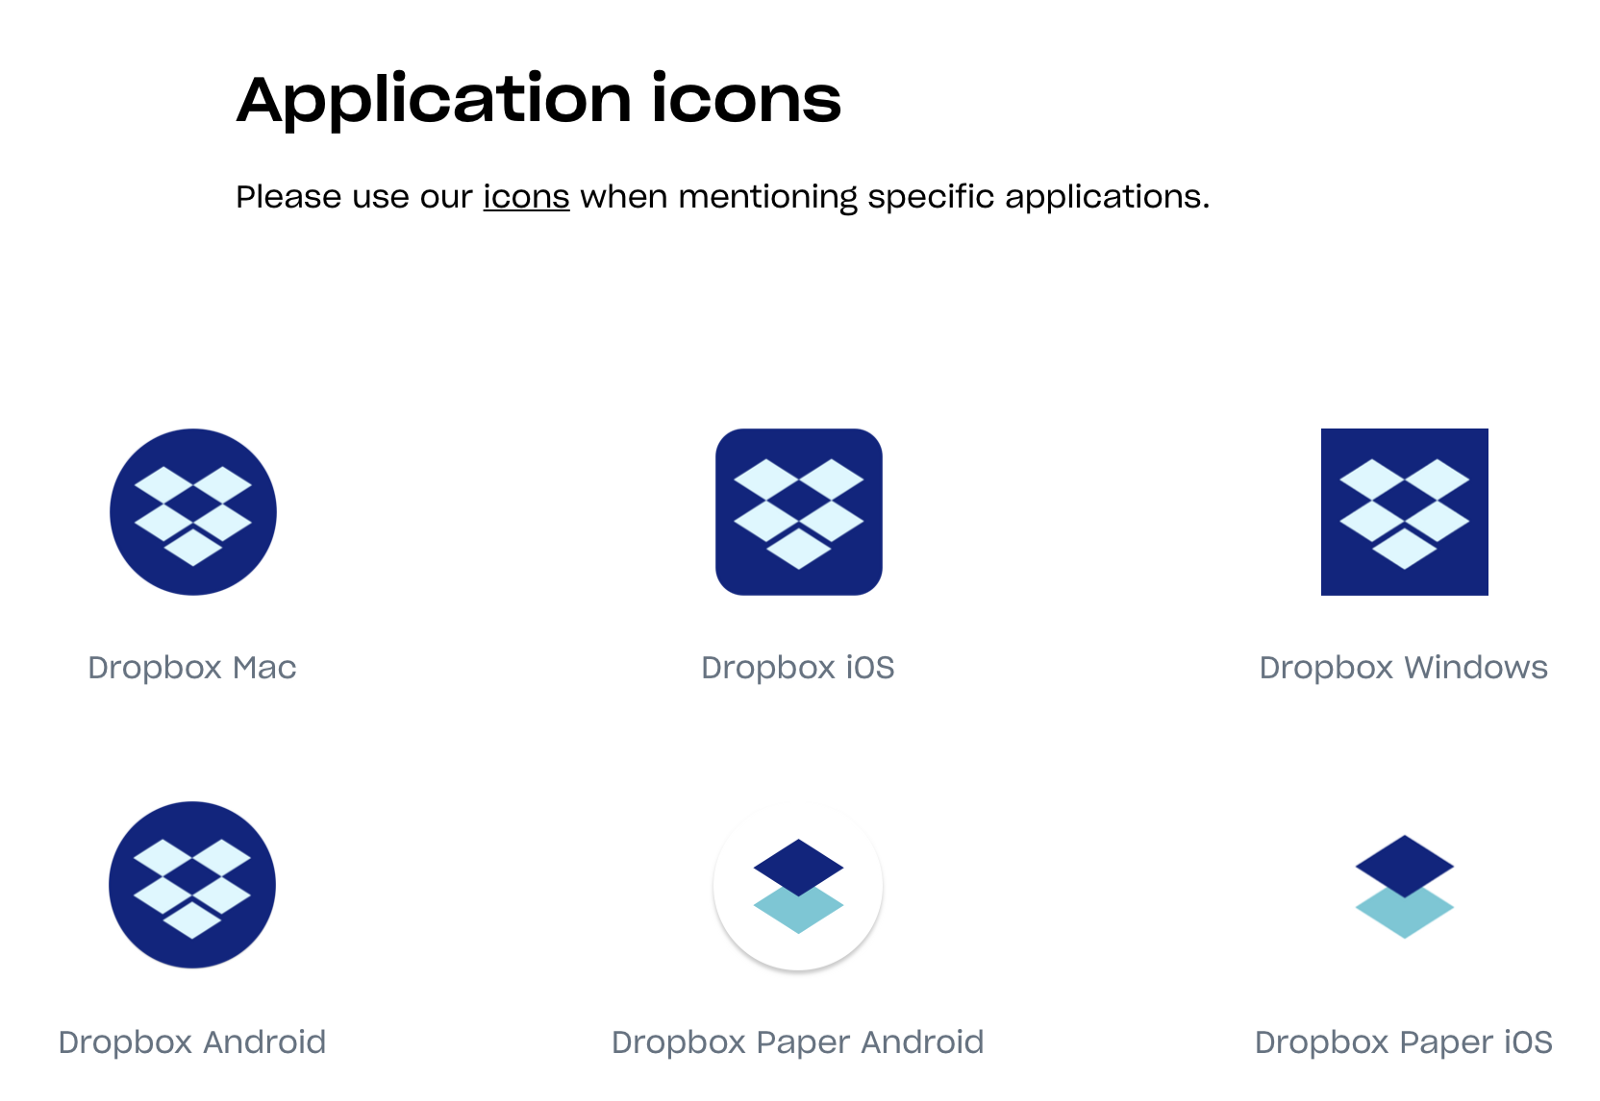 Application icon usage for Dropbox (source)